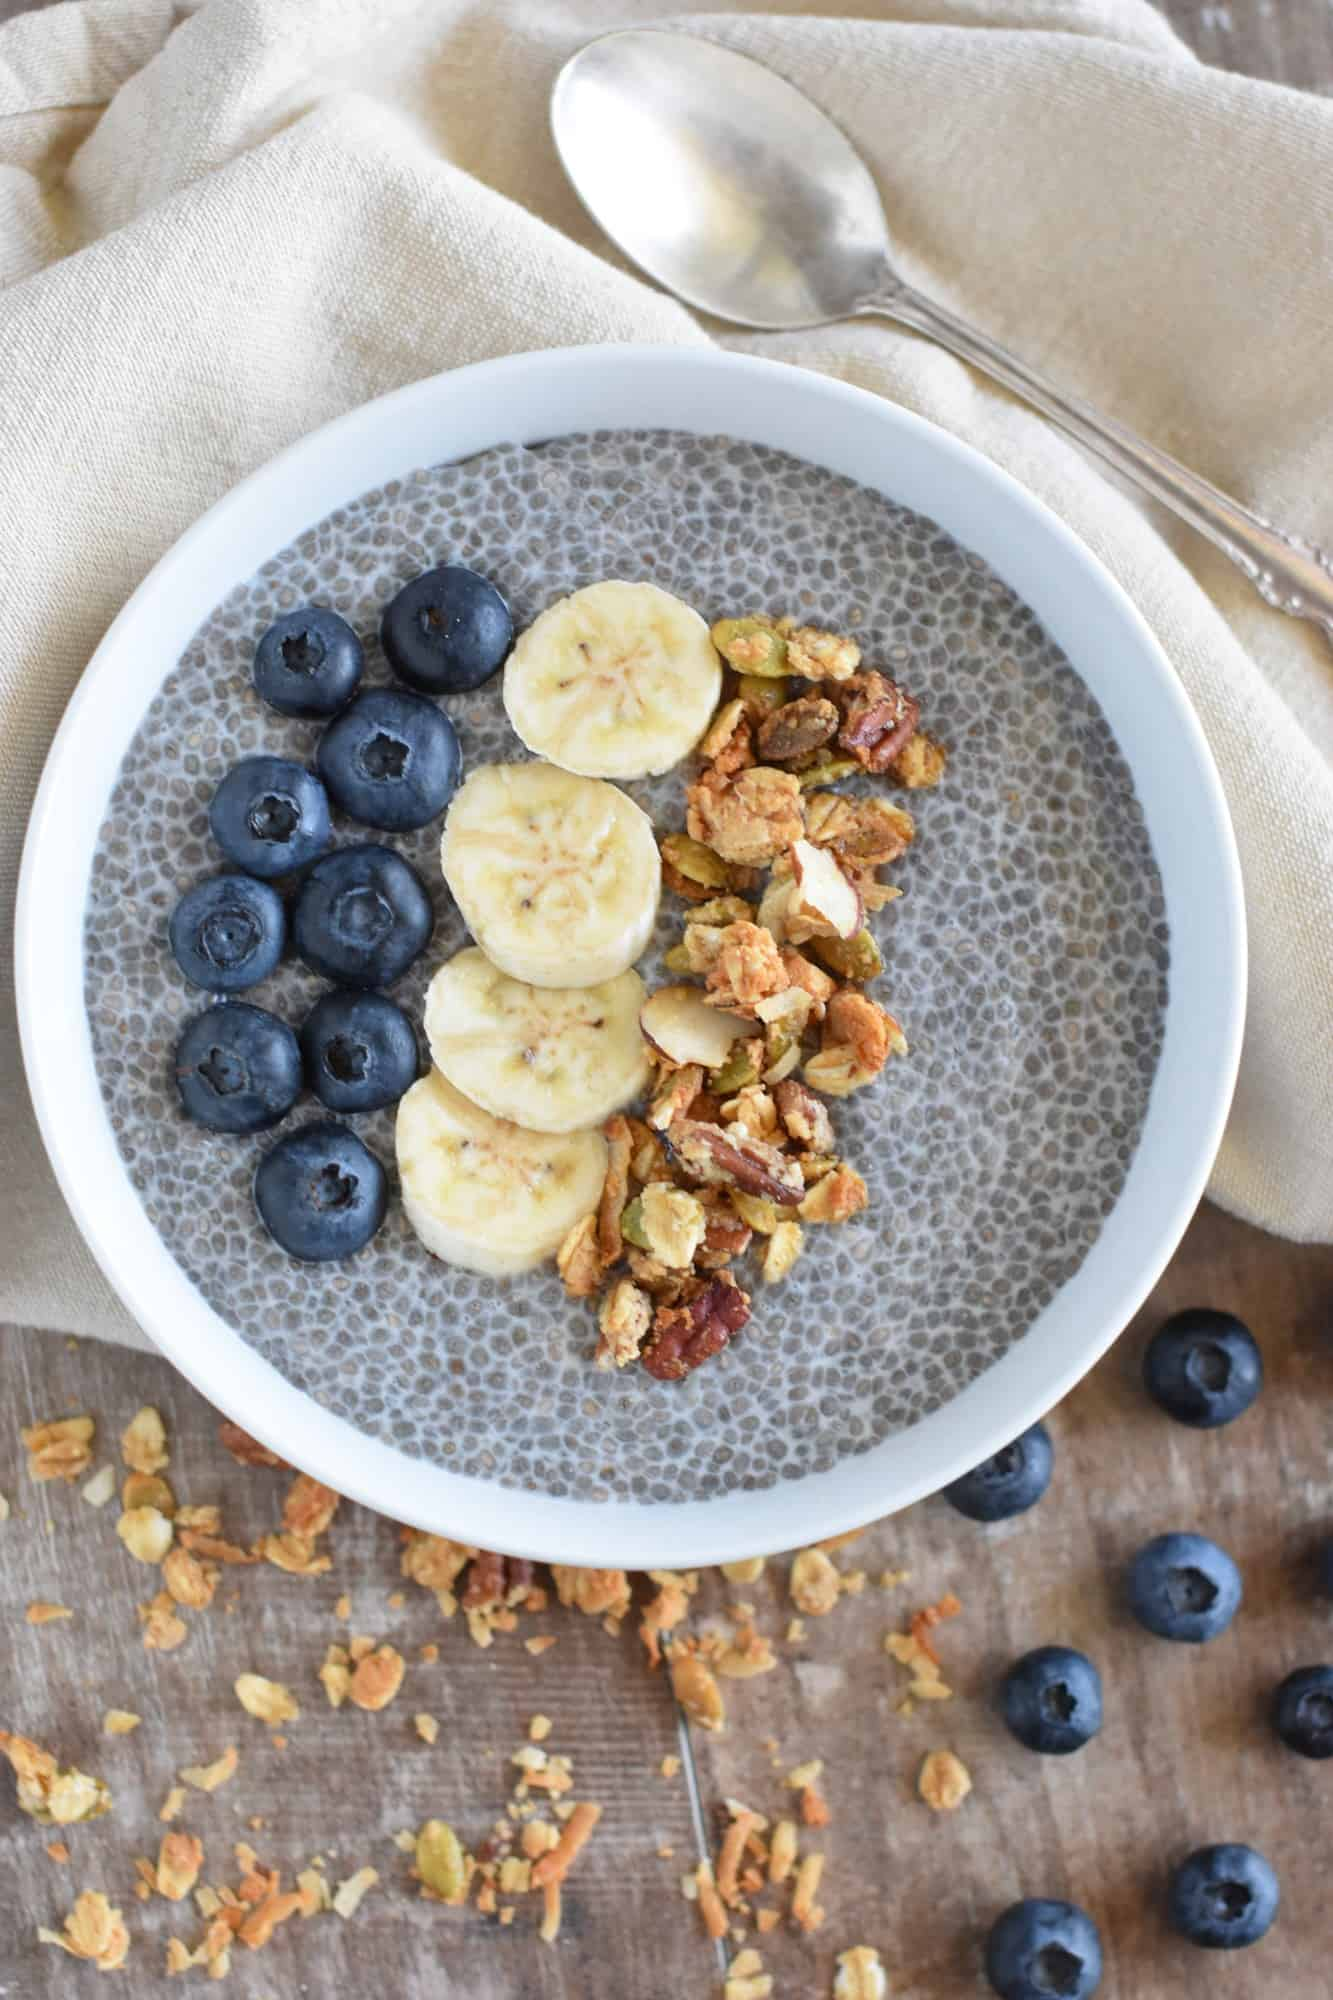 overhead of overnight chia pudding in a white bowl topped with blueberries, bananas and granola with spoon on kitchen napkin behind it